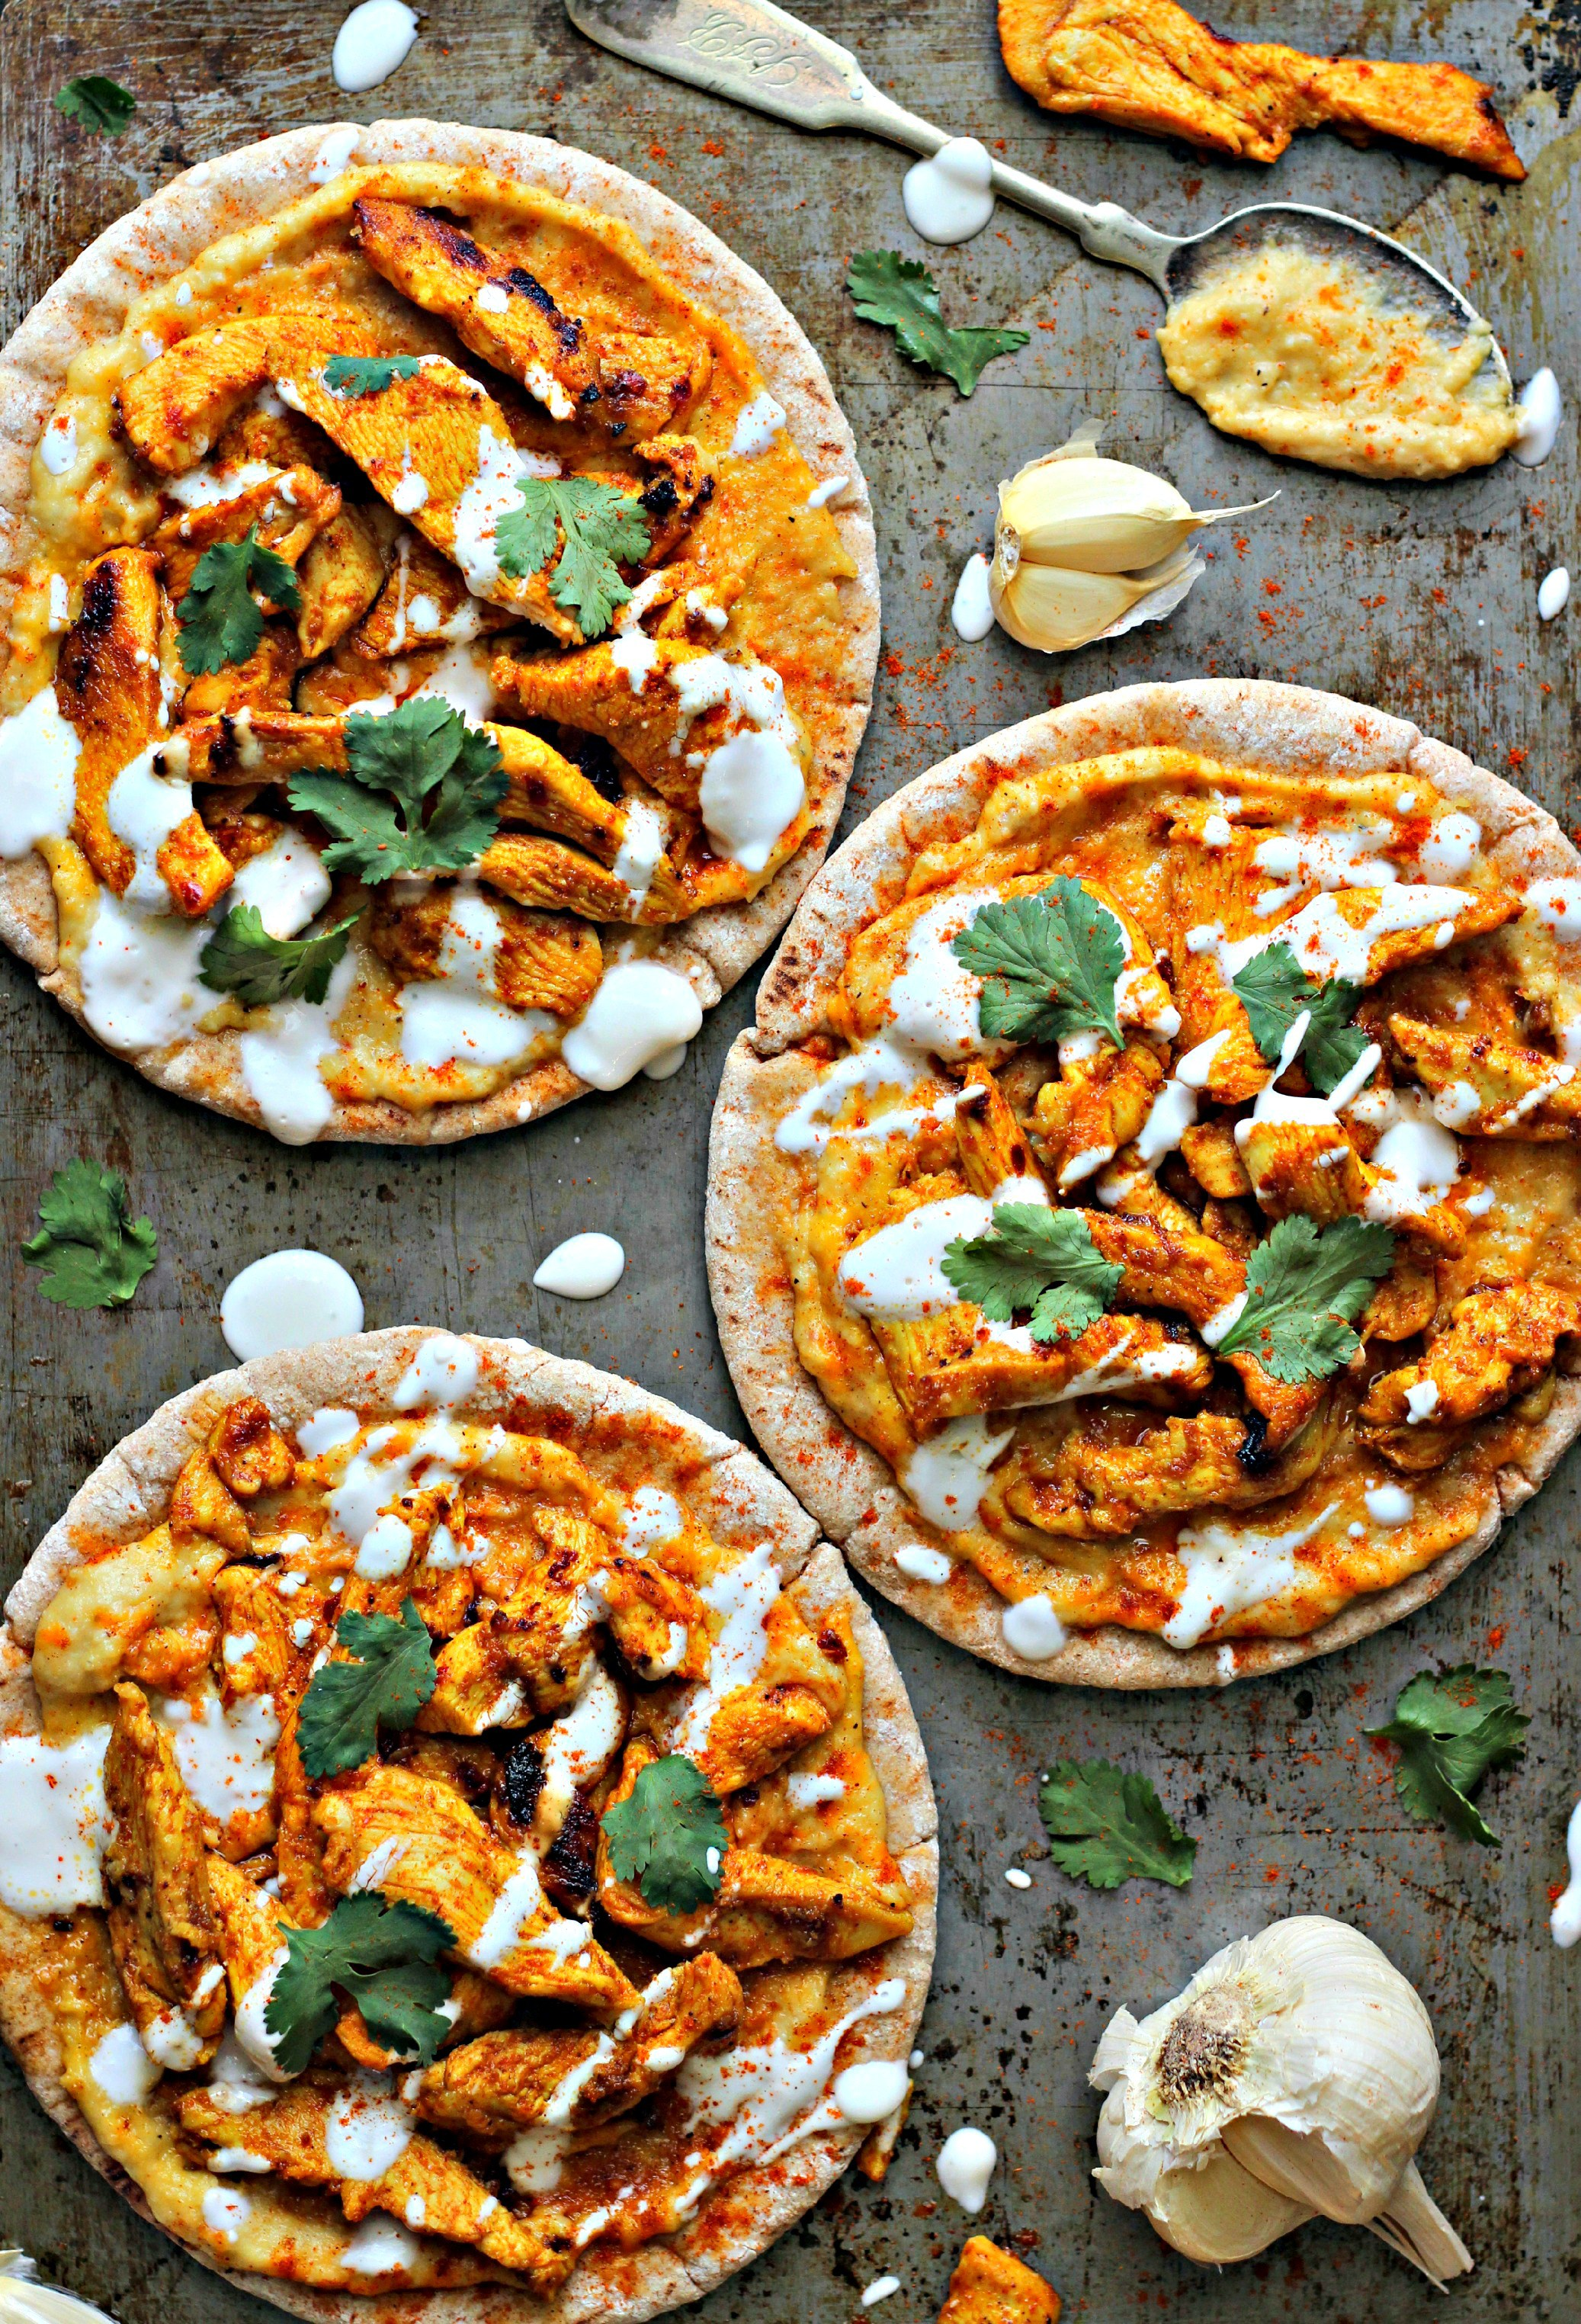 Chicken Shawarma with Hummus on Pita - 20 Amazing Ways to Eat Hummus (that will become instant favorites in your house!) Snuck into sandwiches, a substitute pizza sauce, a base for salad dressing, in soups, chocolate hummus, and even cooked right into pancakes; after scrolling through these recipes you'll be craving hummus like none other. Click through for the recipes.